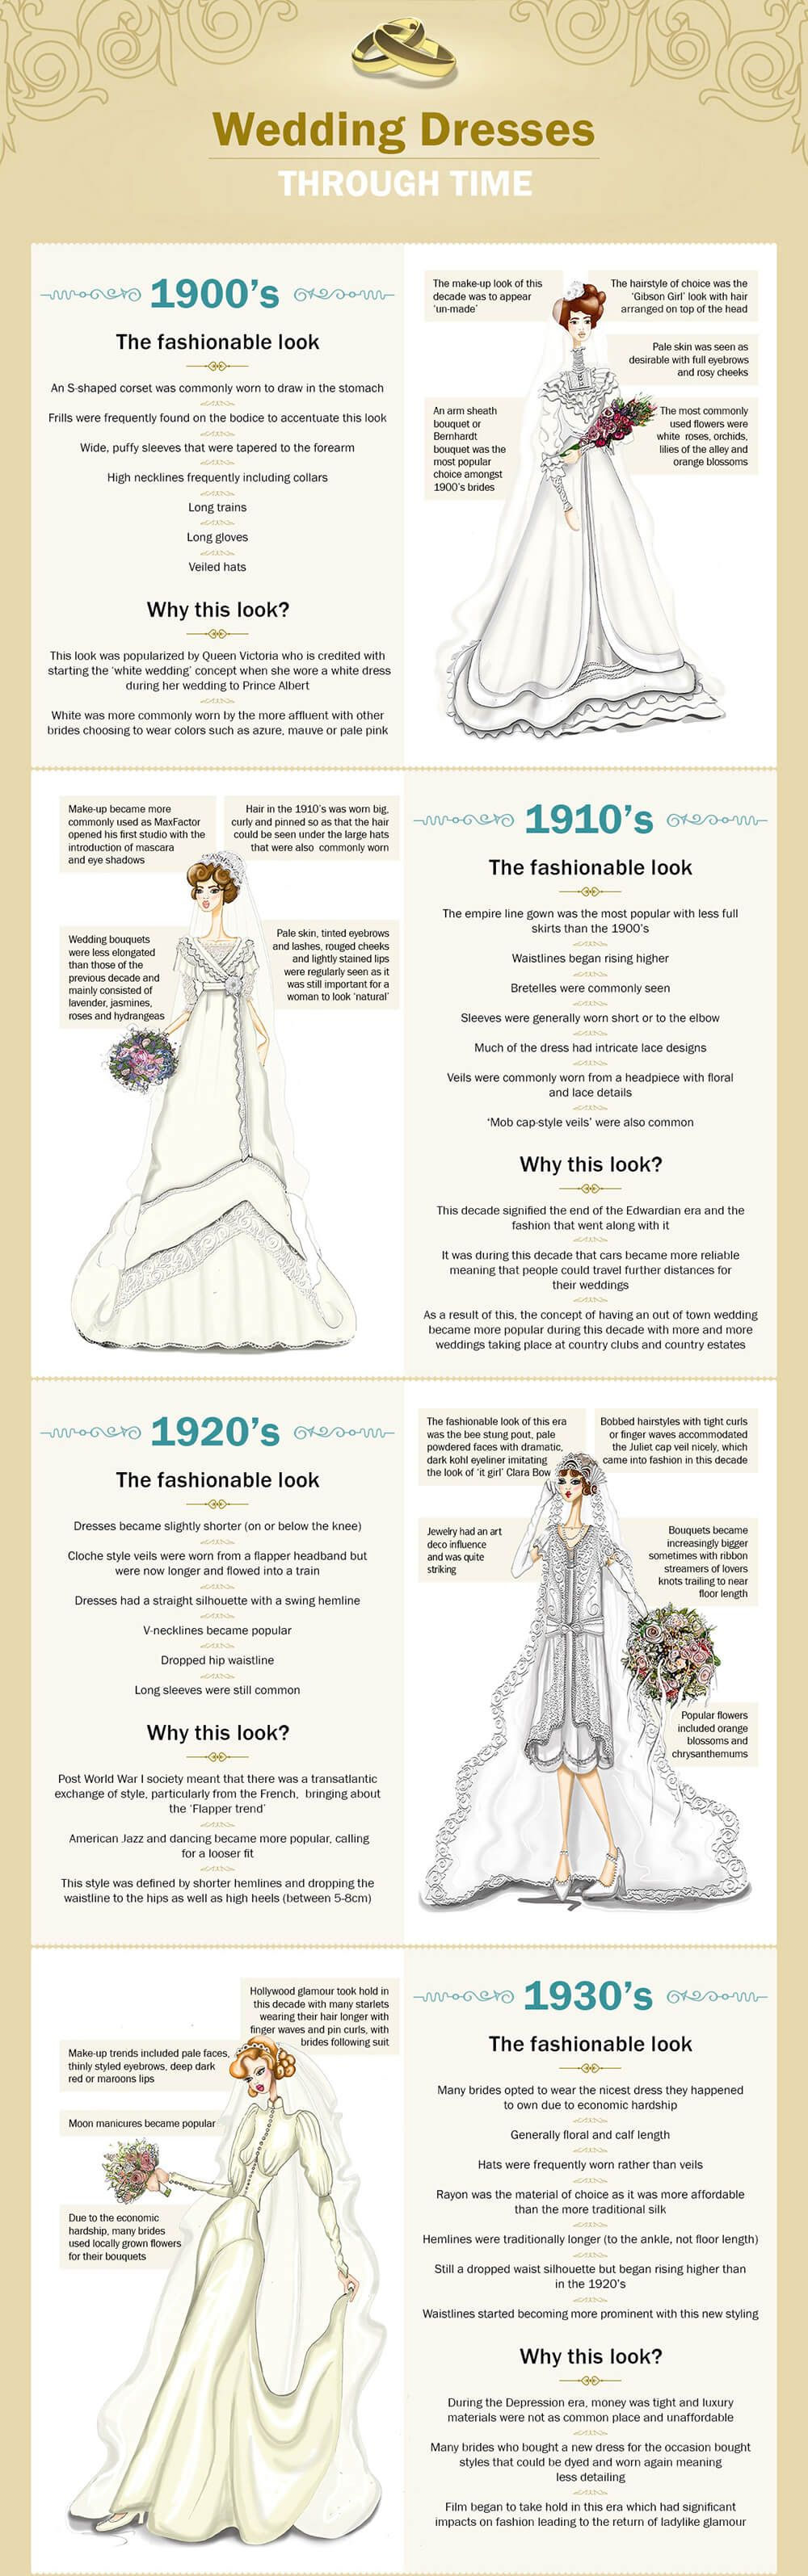 Wedding dresses through time new pinterest fairmont hotel